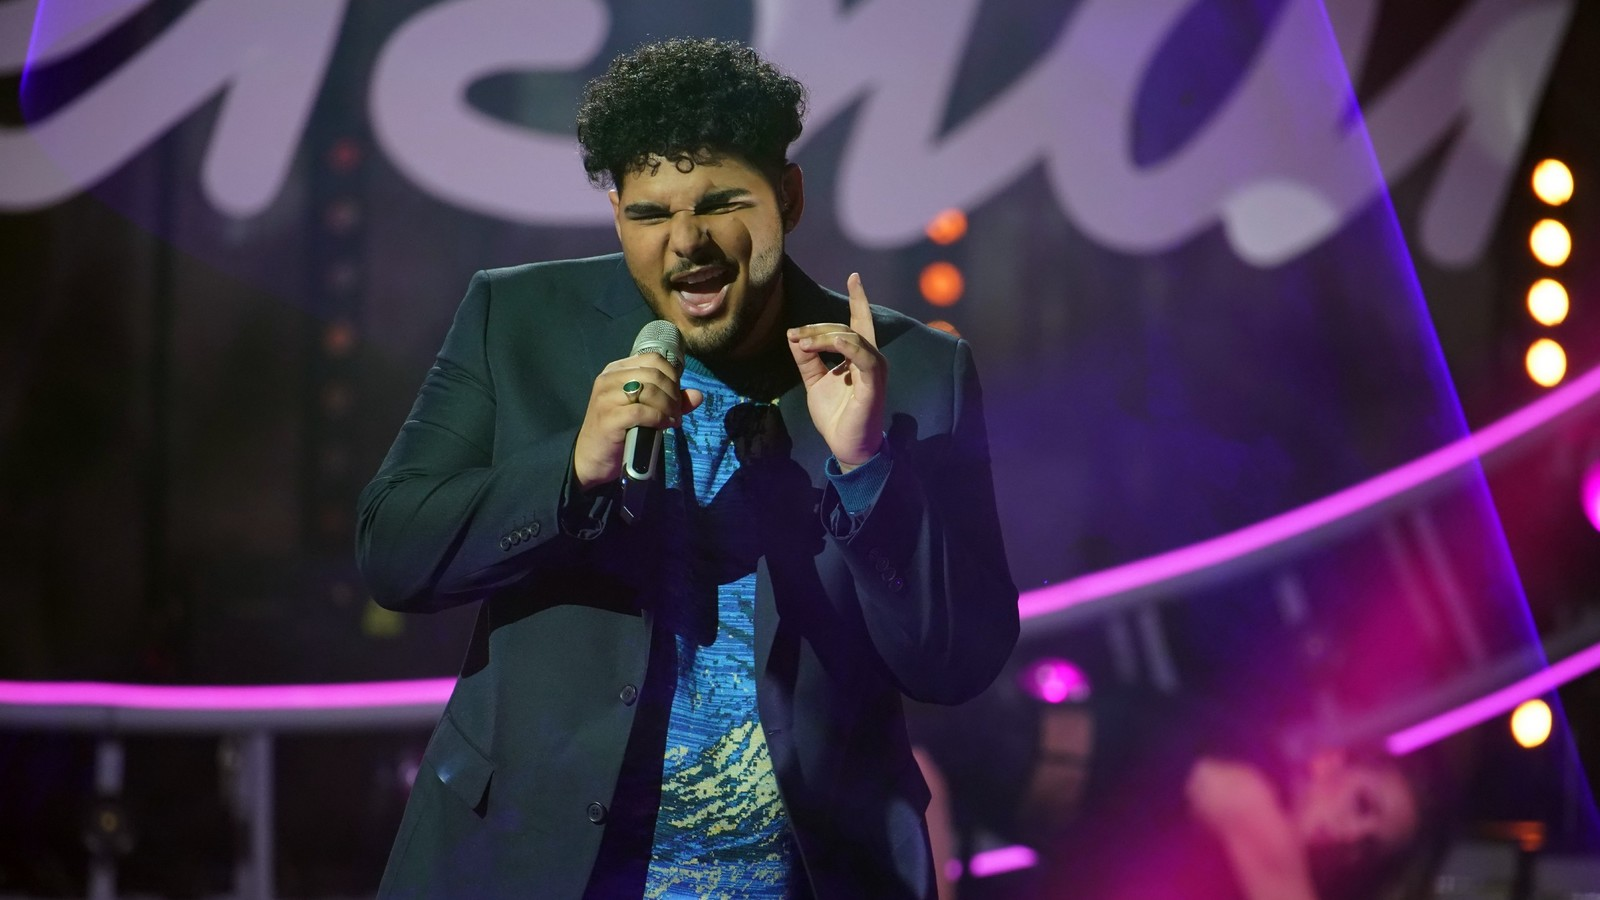 DSDS-Finalist Starian McCoy